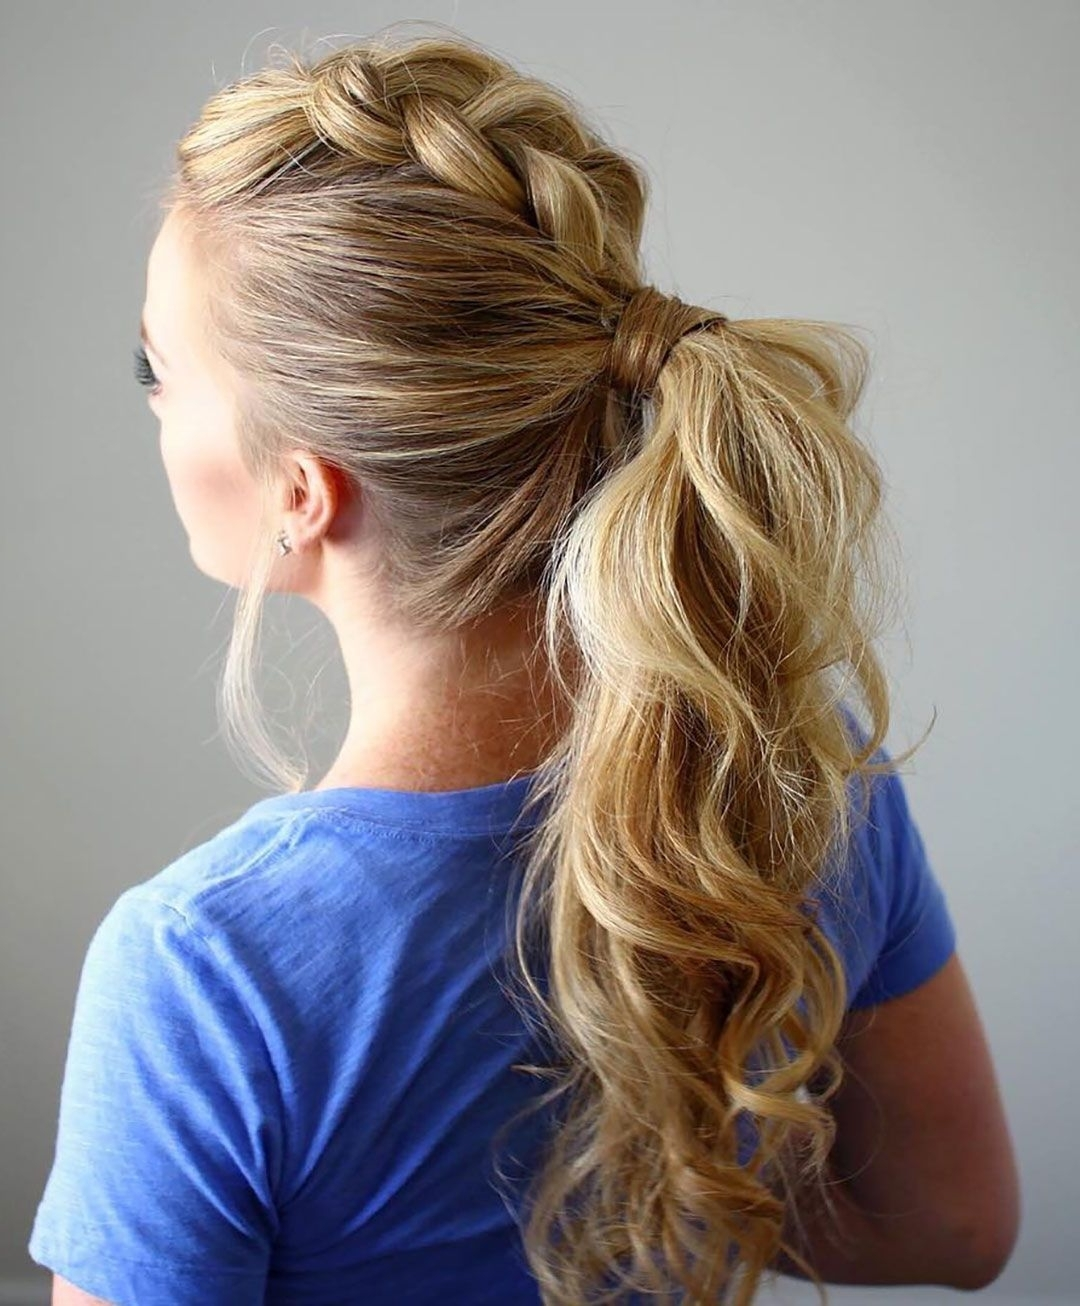 Ponytail Hairstyles – 5 Easy Ponytail Looks For The Work Week Throughout Latest Dutch Inspired Pony Hairstyles (View 16 of 20)